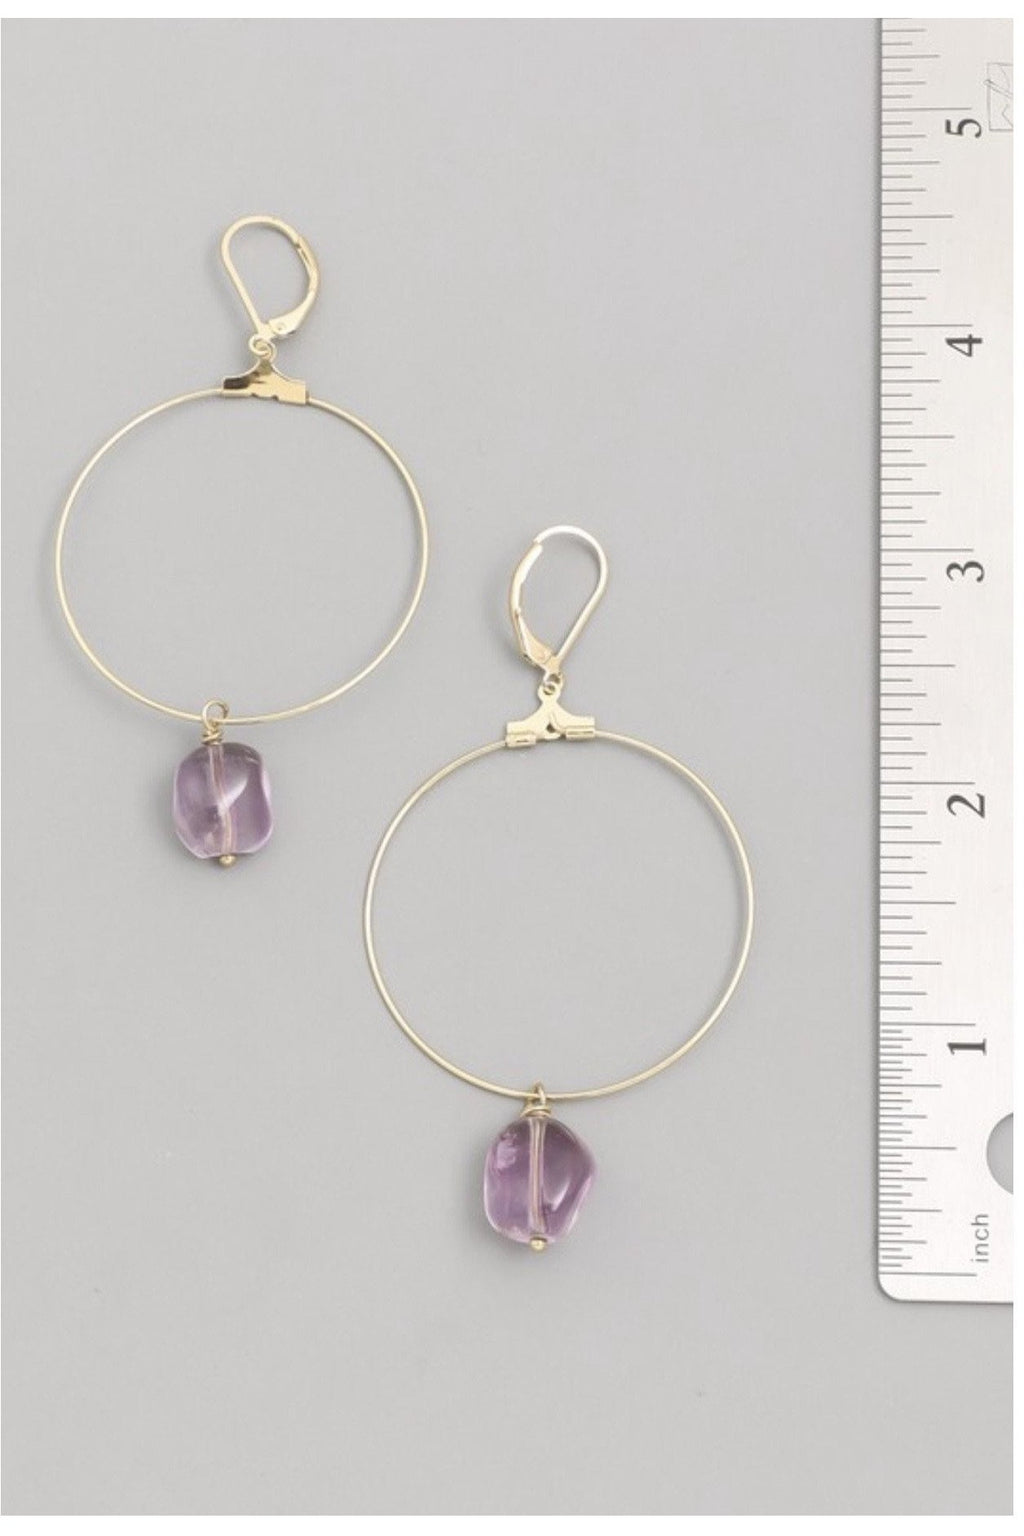 Amatista Hoop Earrings - Indigo Closet